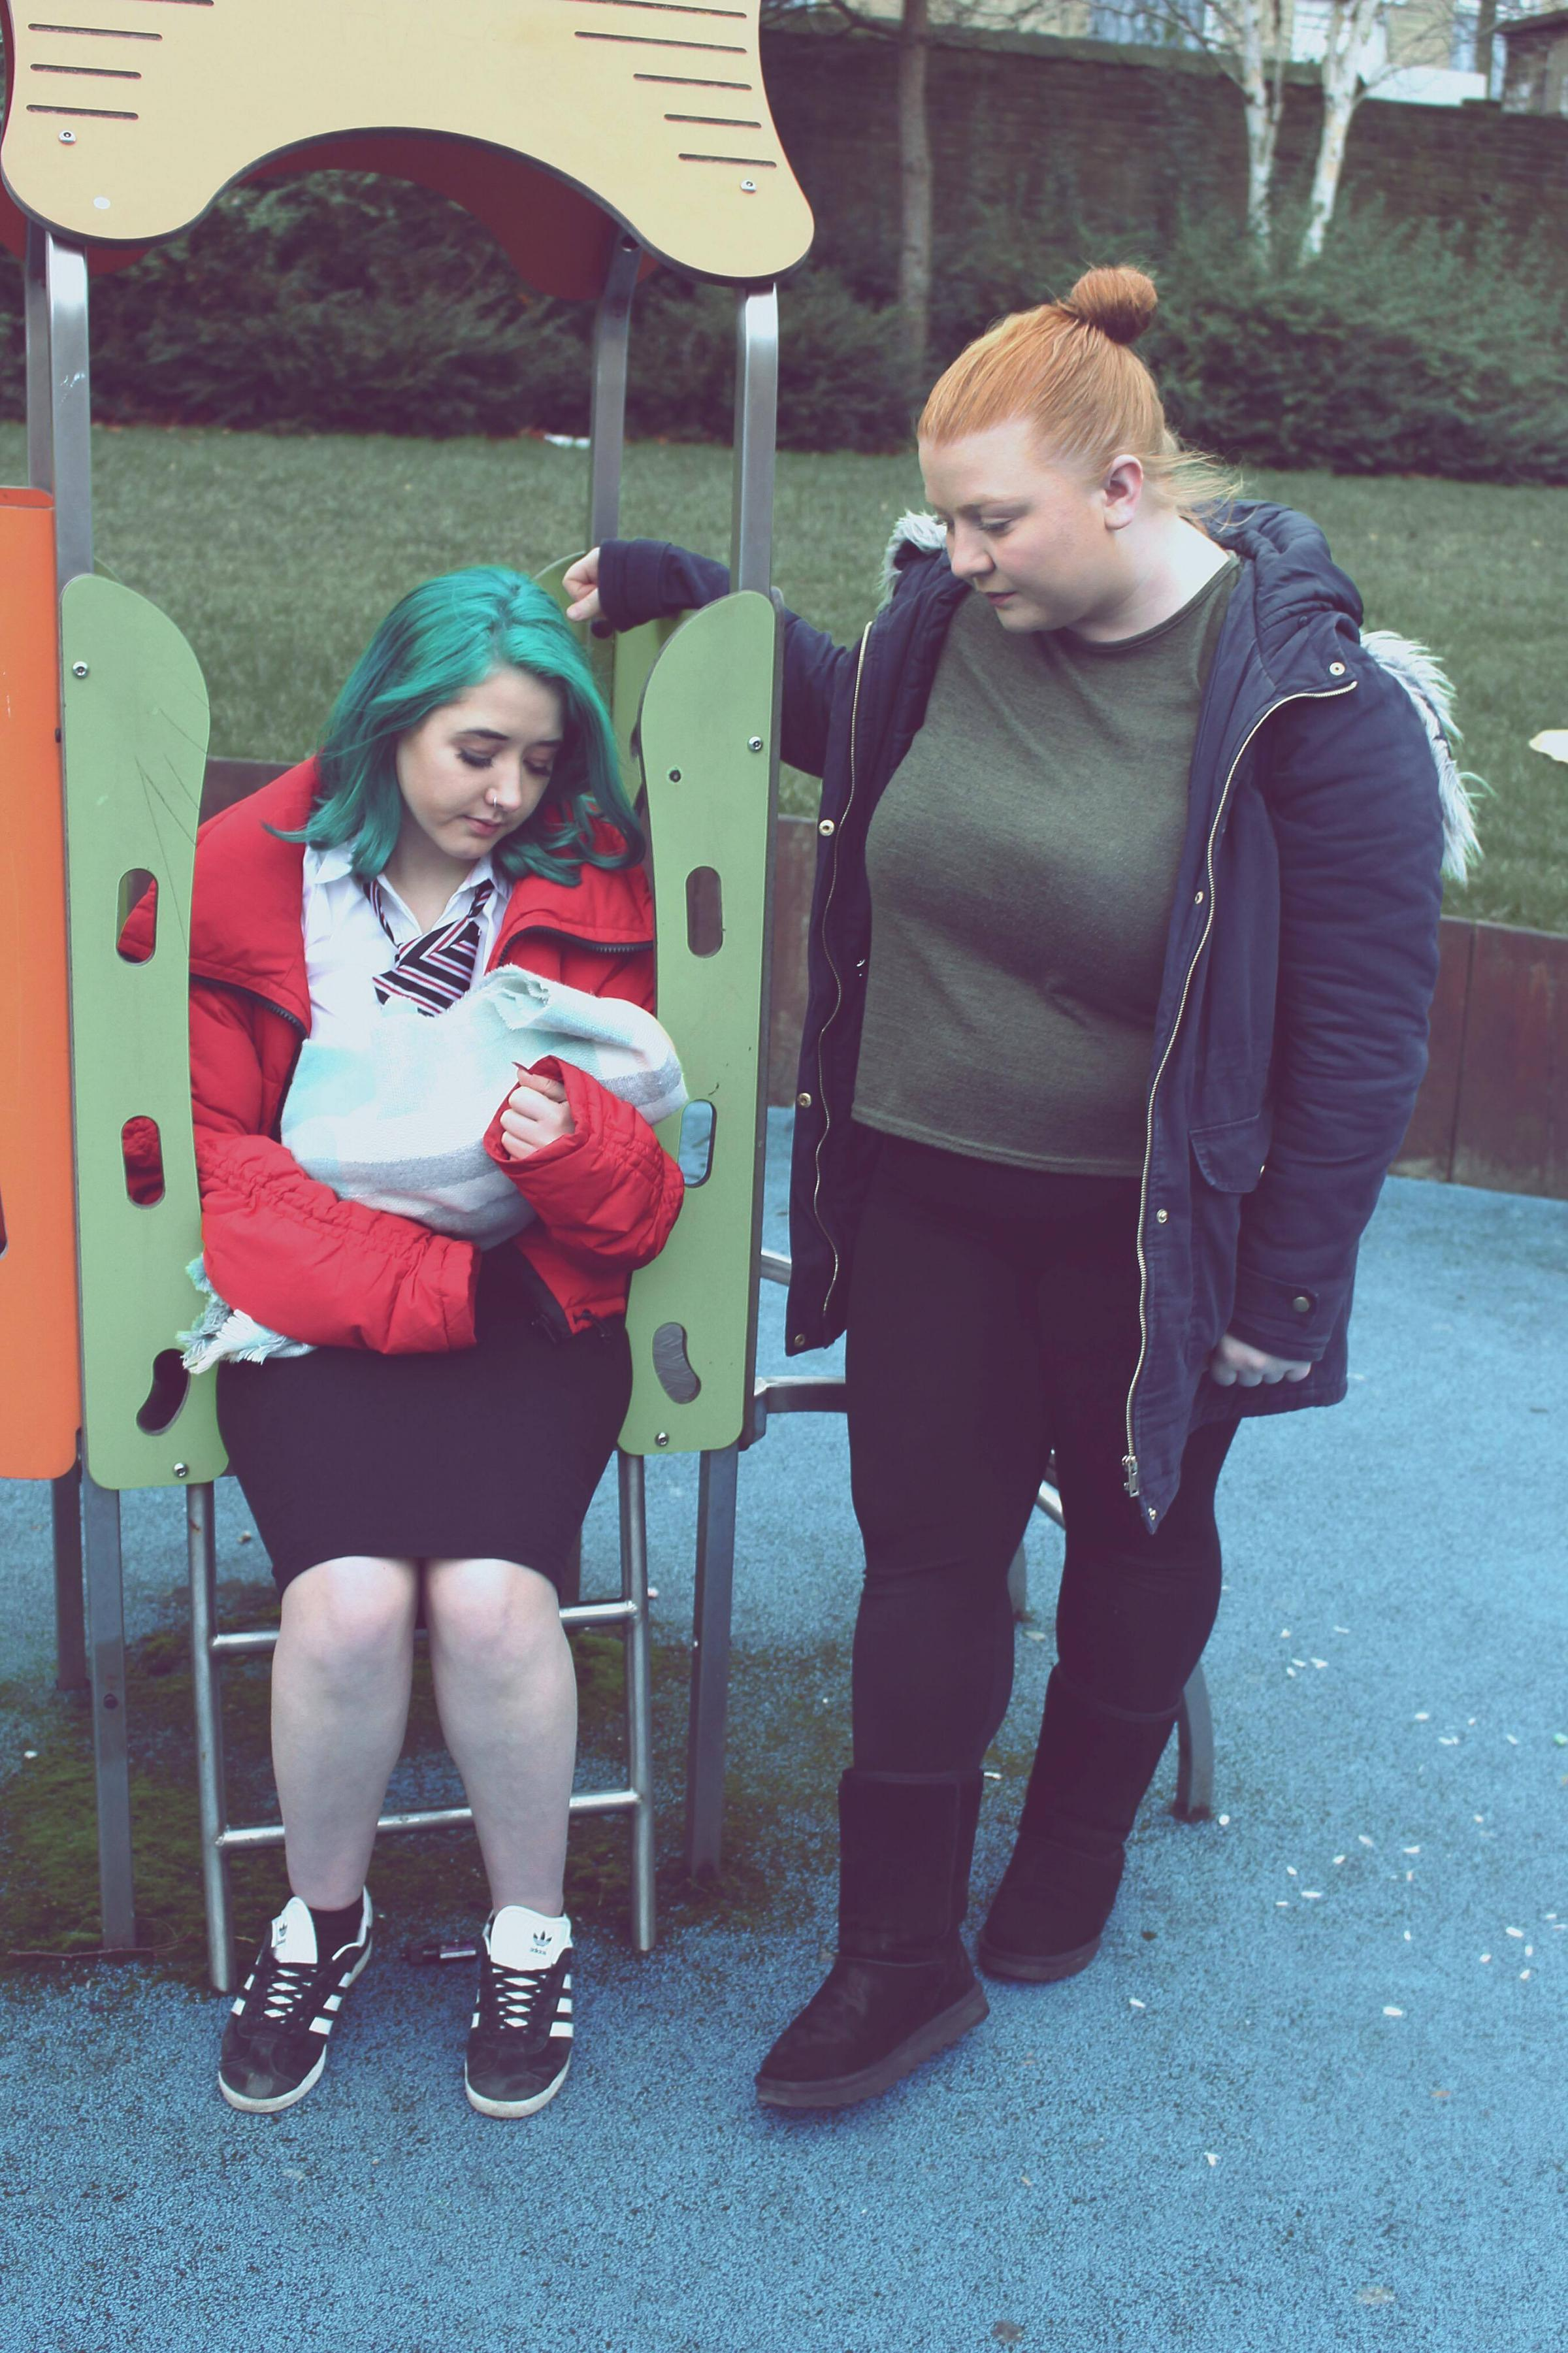 Leah Hand as Brenda and Katie Mahon as Amy in the play 'Brenda's Got a Baby' by Bloomin' Buds Theatre Company